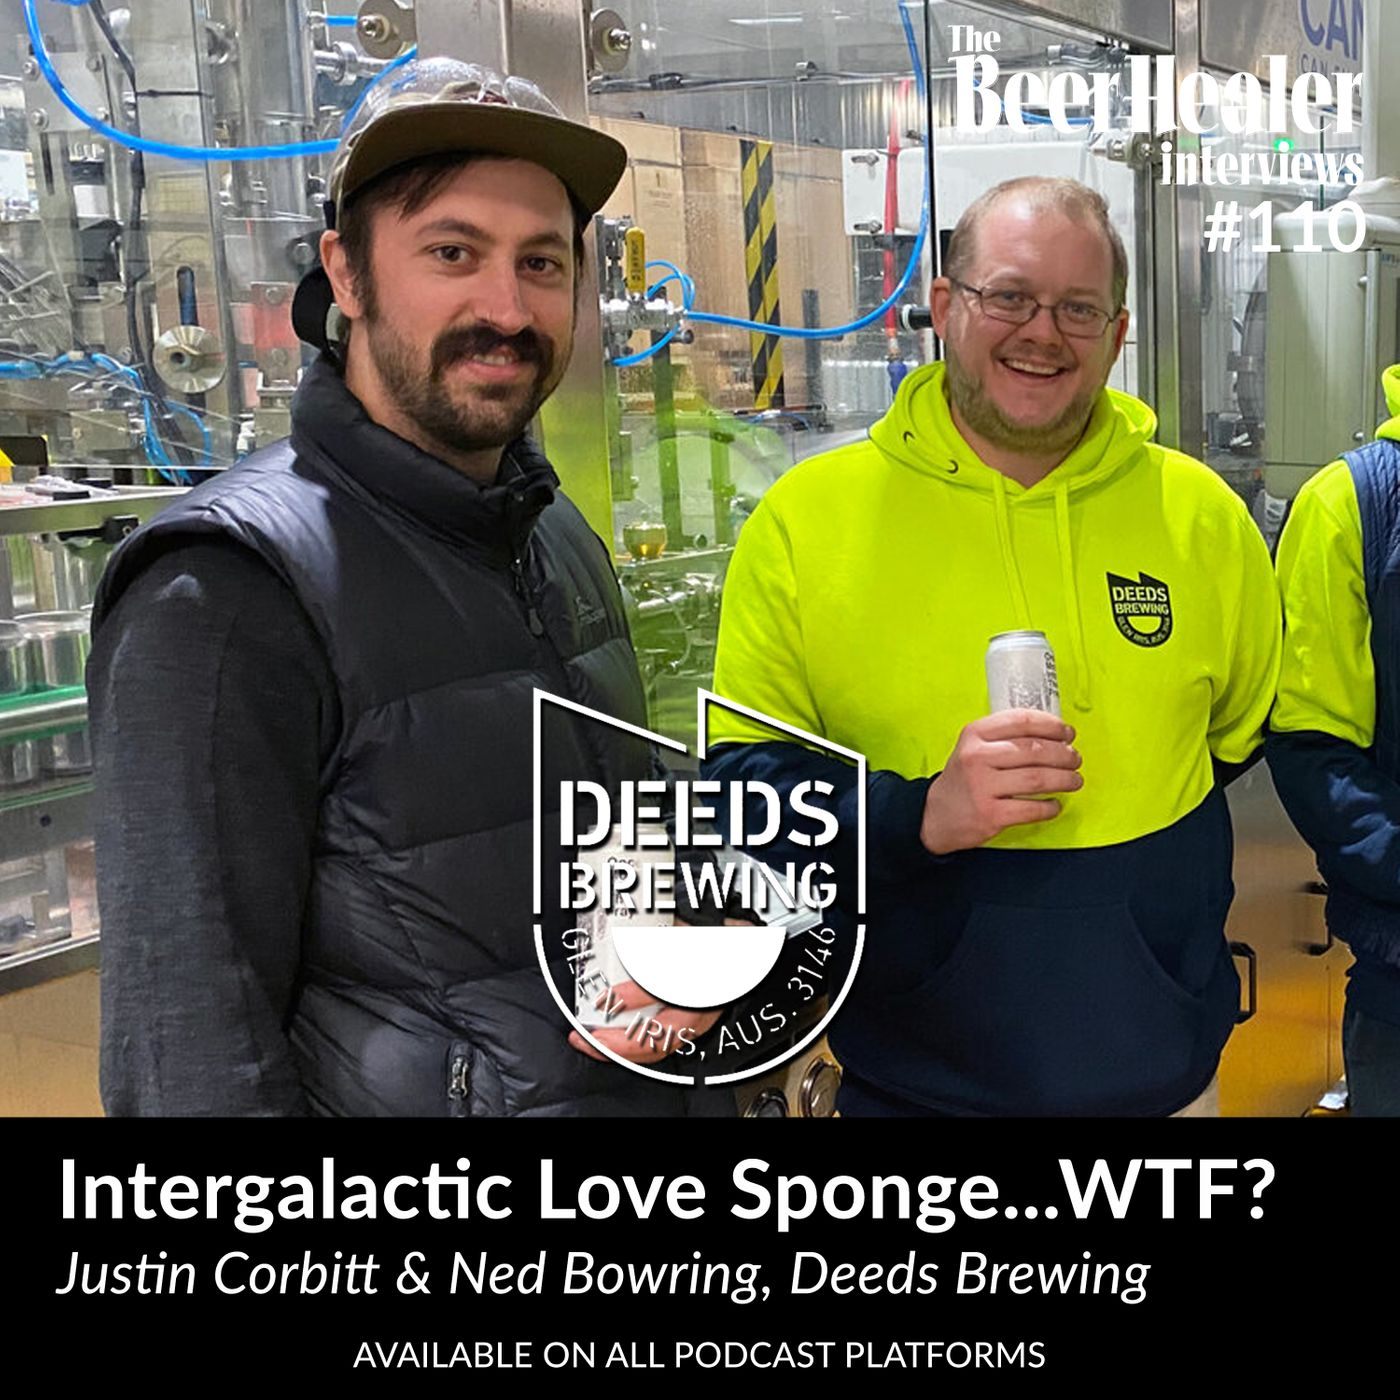 Ep. 112 - Intergalactic Love Sponge...WTF? With Justin Corbitt & Ned Bowring from Deeds Brewing.